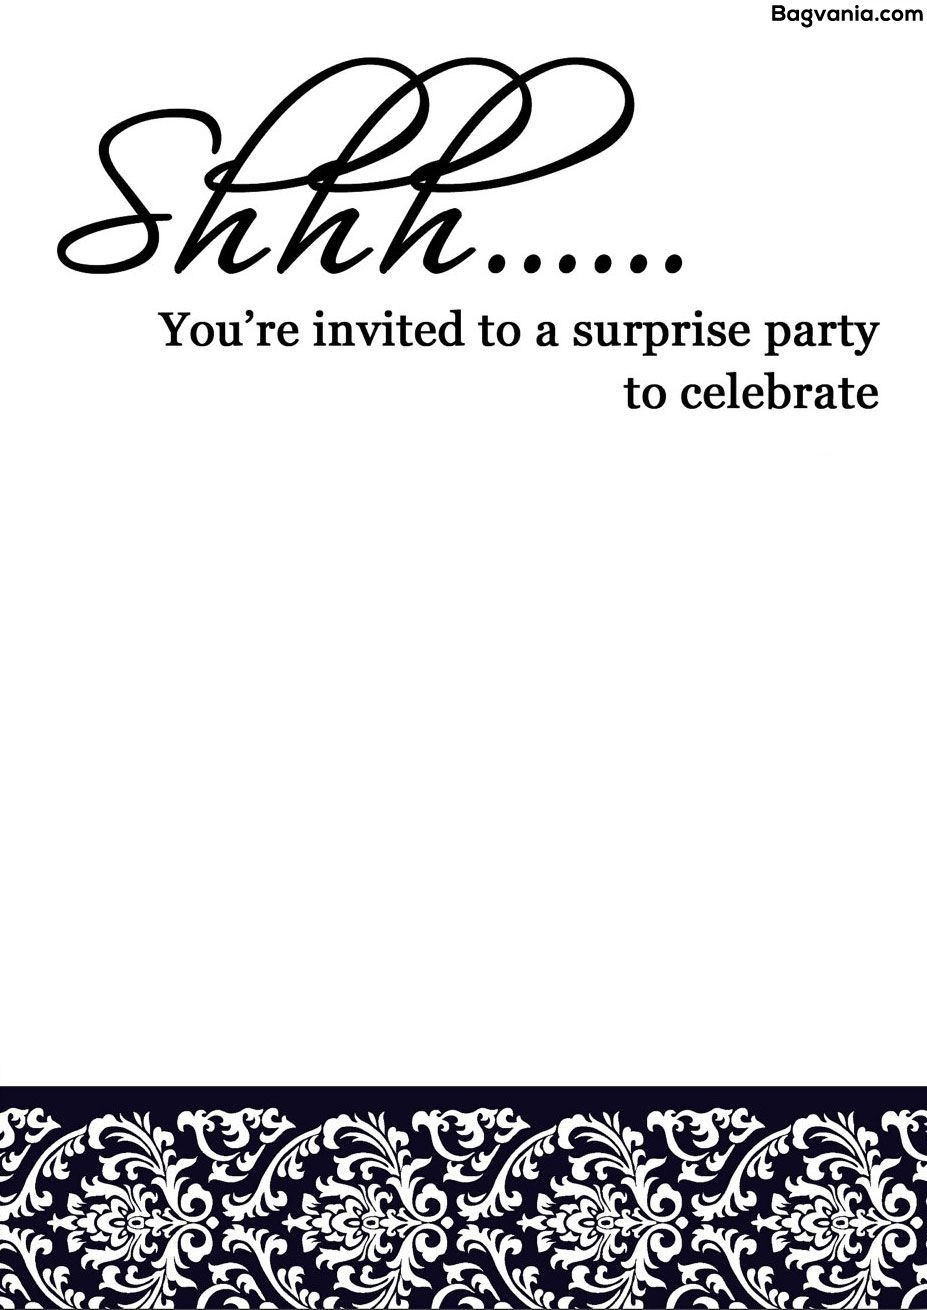 Free Printable Surprise Birthday Invitations – Bagvania Free - Free Printable Surprise Party Invitations